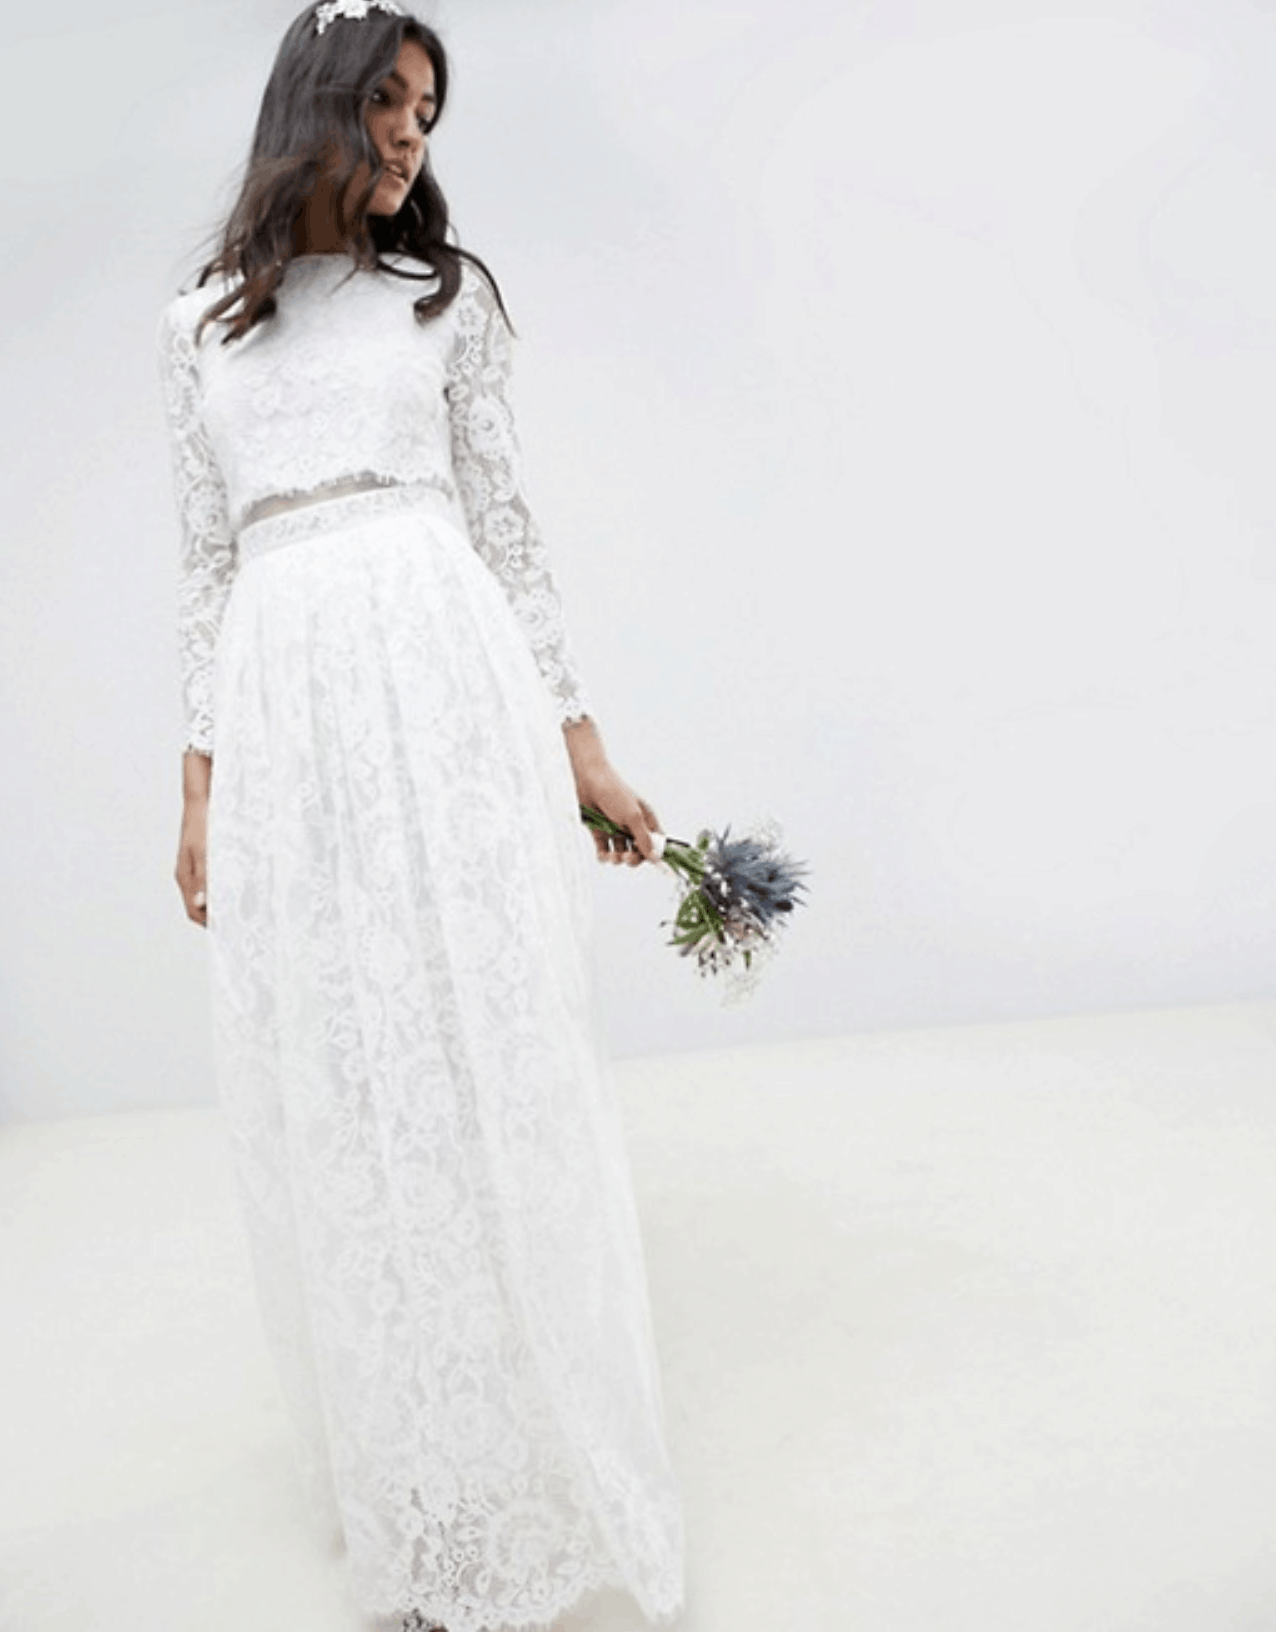 7b85c240ca0f31 ... Evening Dresses Cheap Affordable Bridal Gowns and Wedding Dress ASOS  Edition Lace Long Sleeve Crop Top Maxi Wedding .